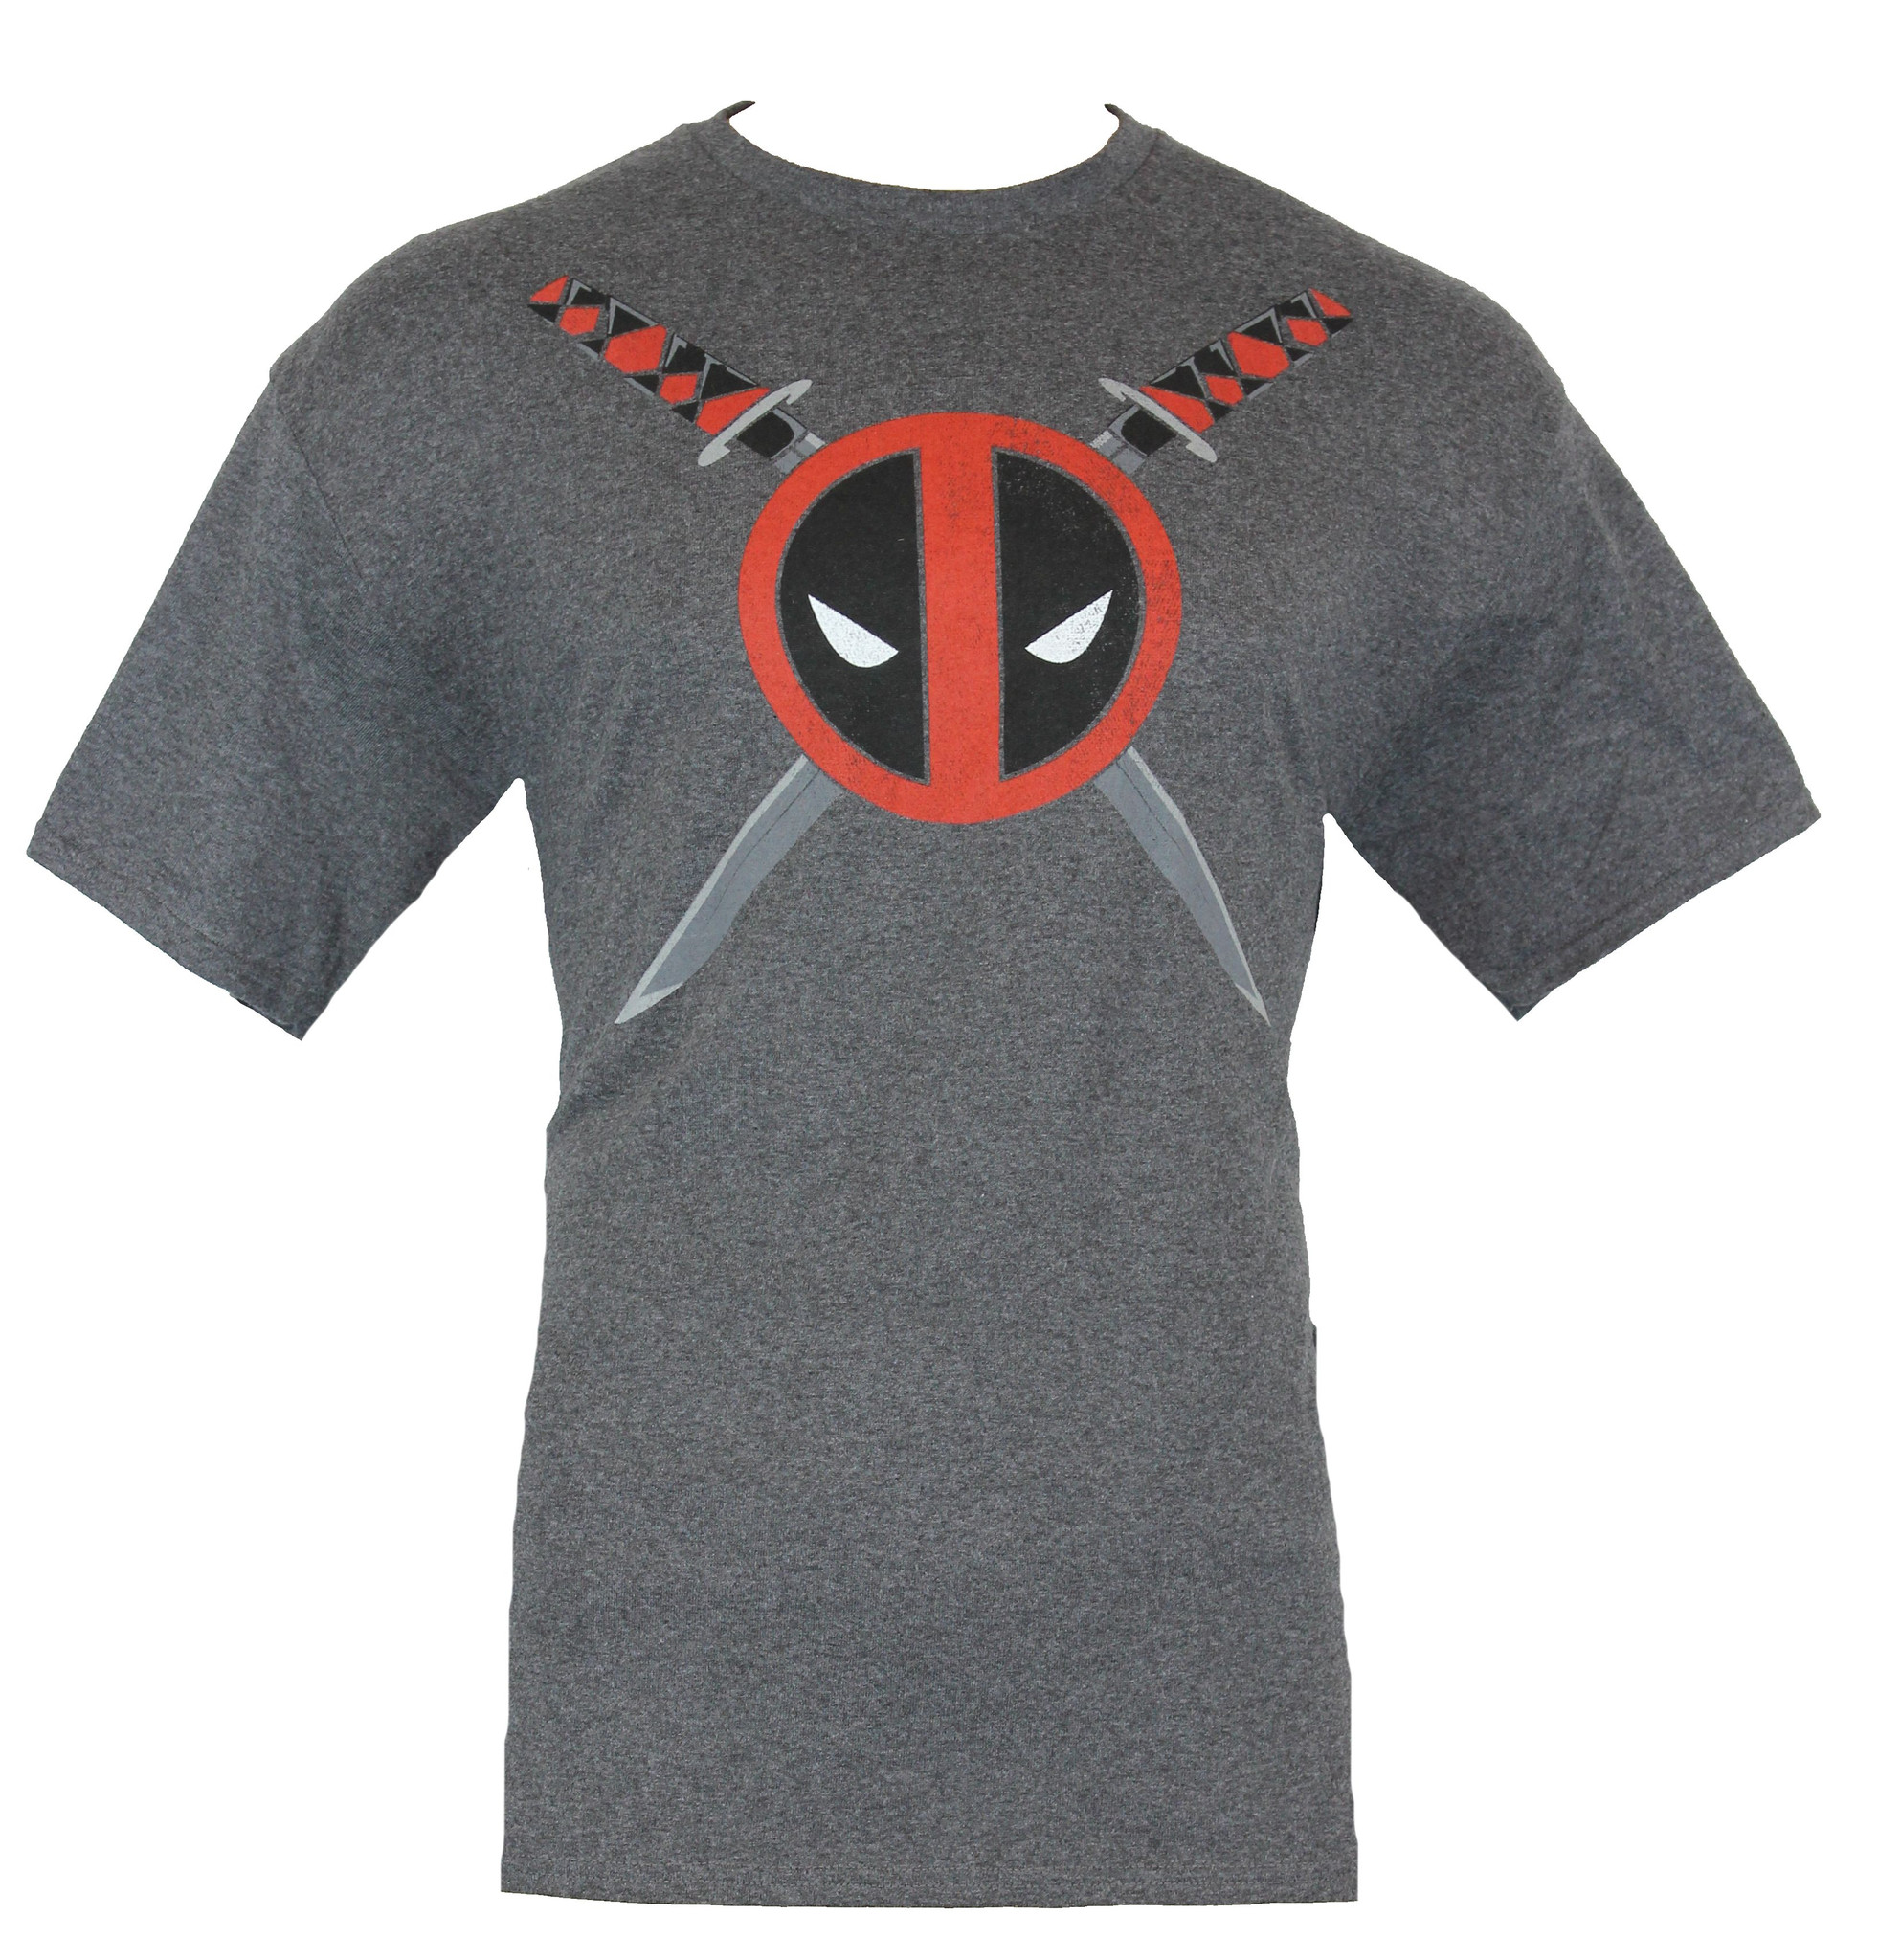 Deadpool (Marvel Comics) Mens T-Shirt - Classic Logo In Front of Crossed Swords